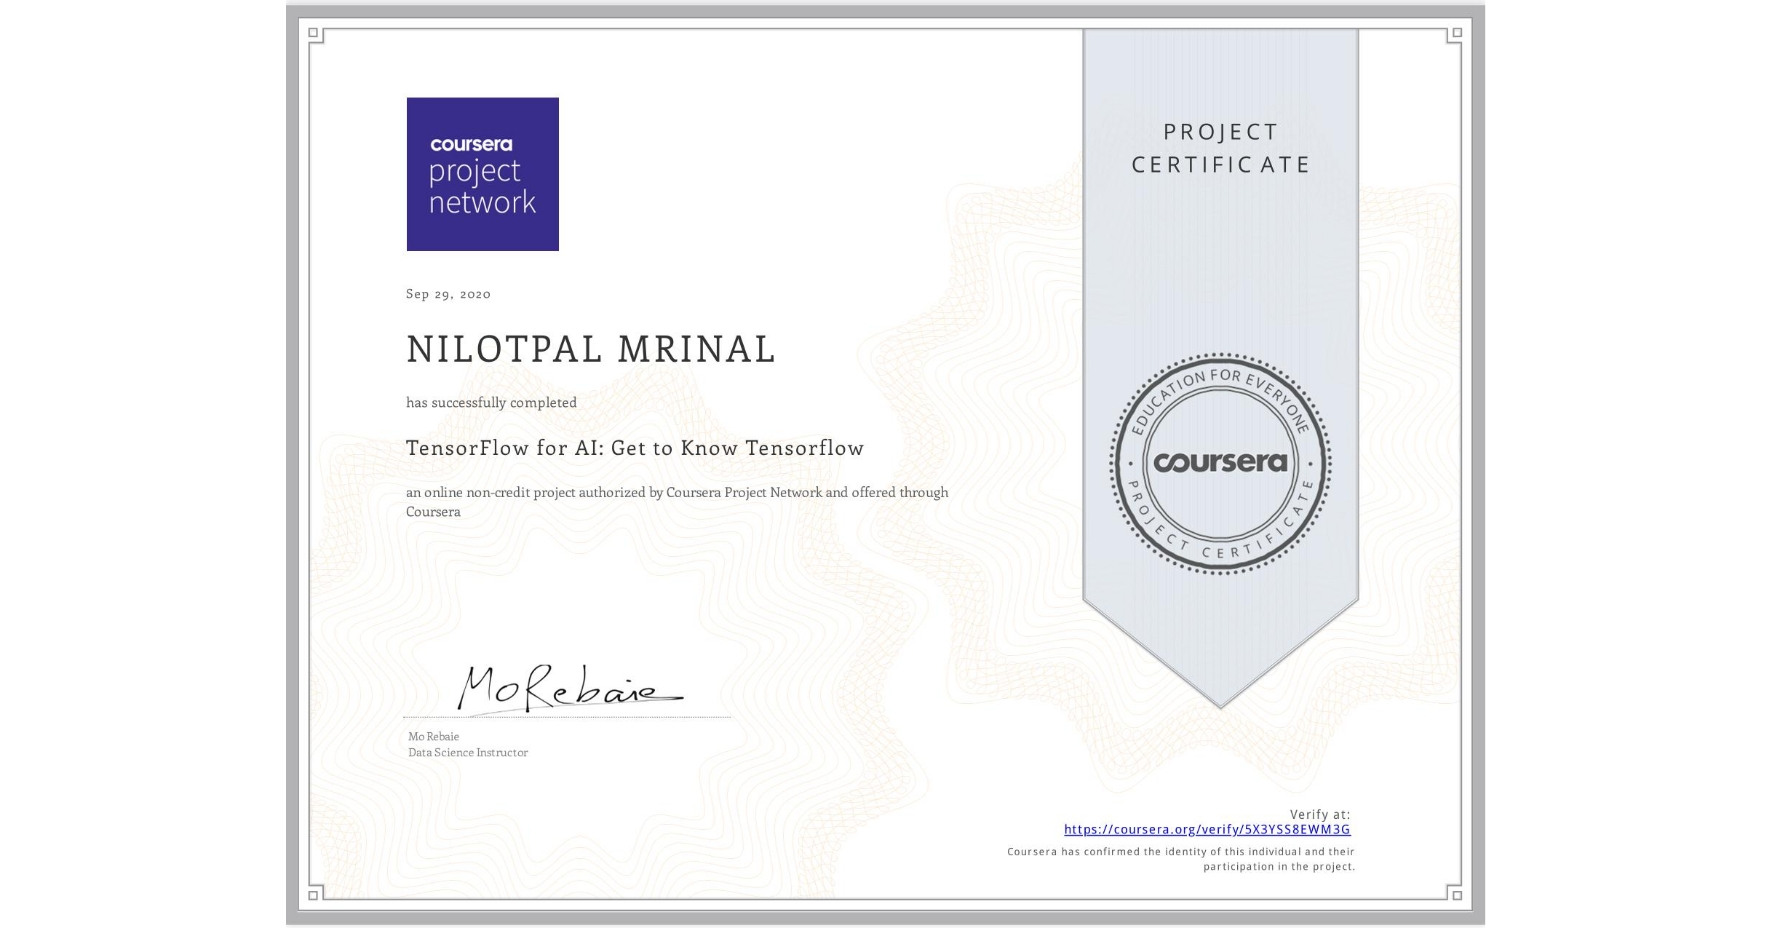 View certificate for NILOTPAL MRINAL, TensorFlow for AI: Get to Know Tensorflow, an online non-credit course authorized by Coursera Project Network and offered through Coursera